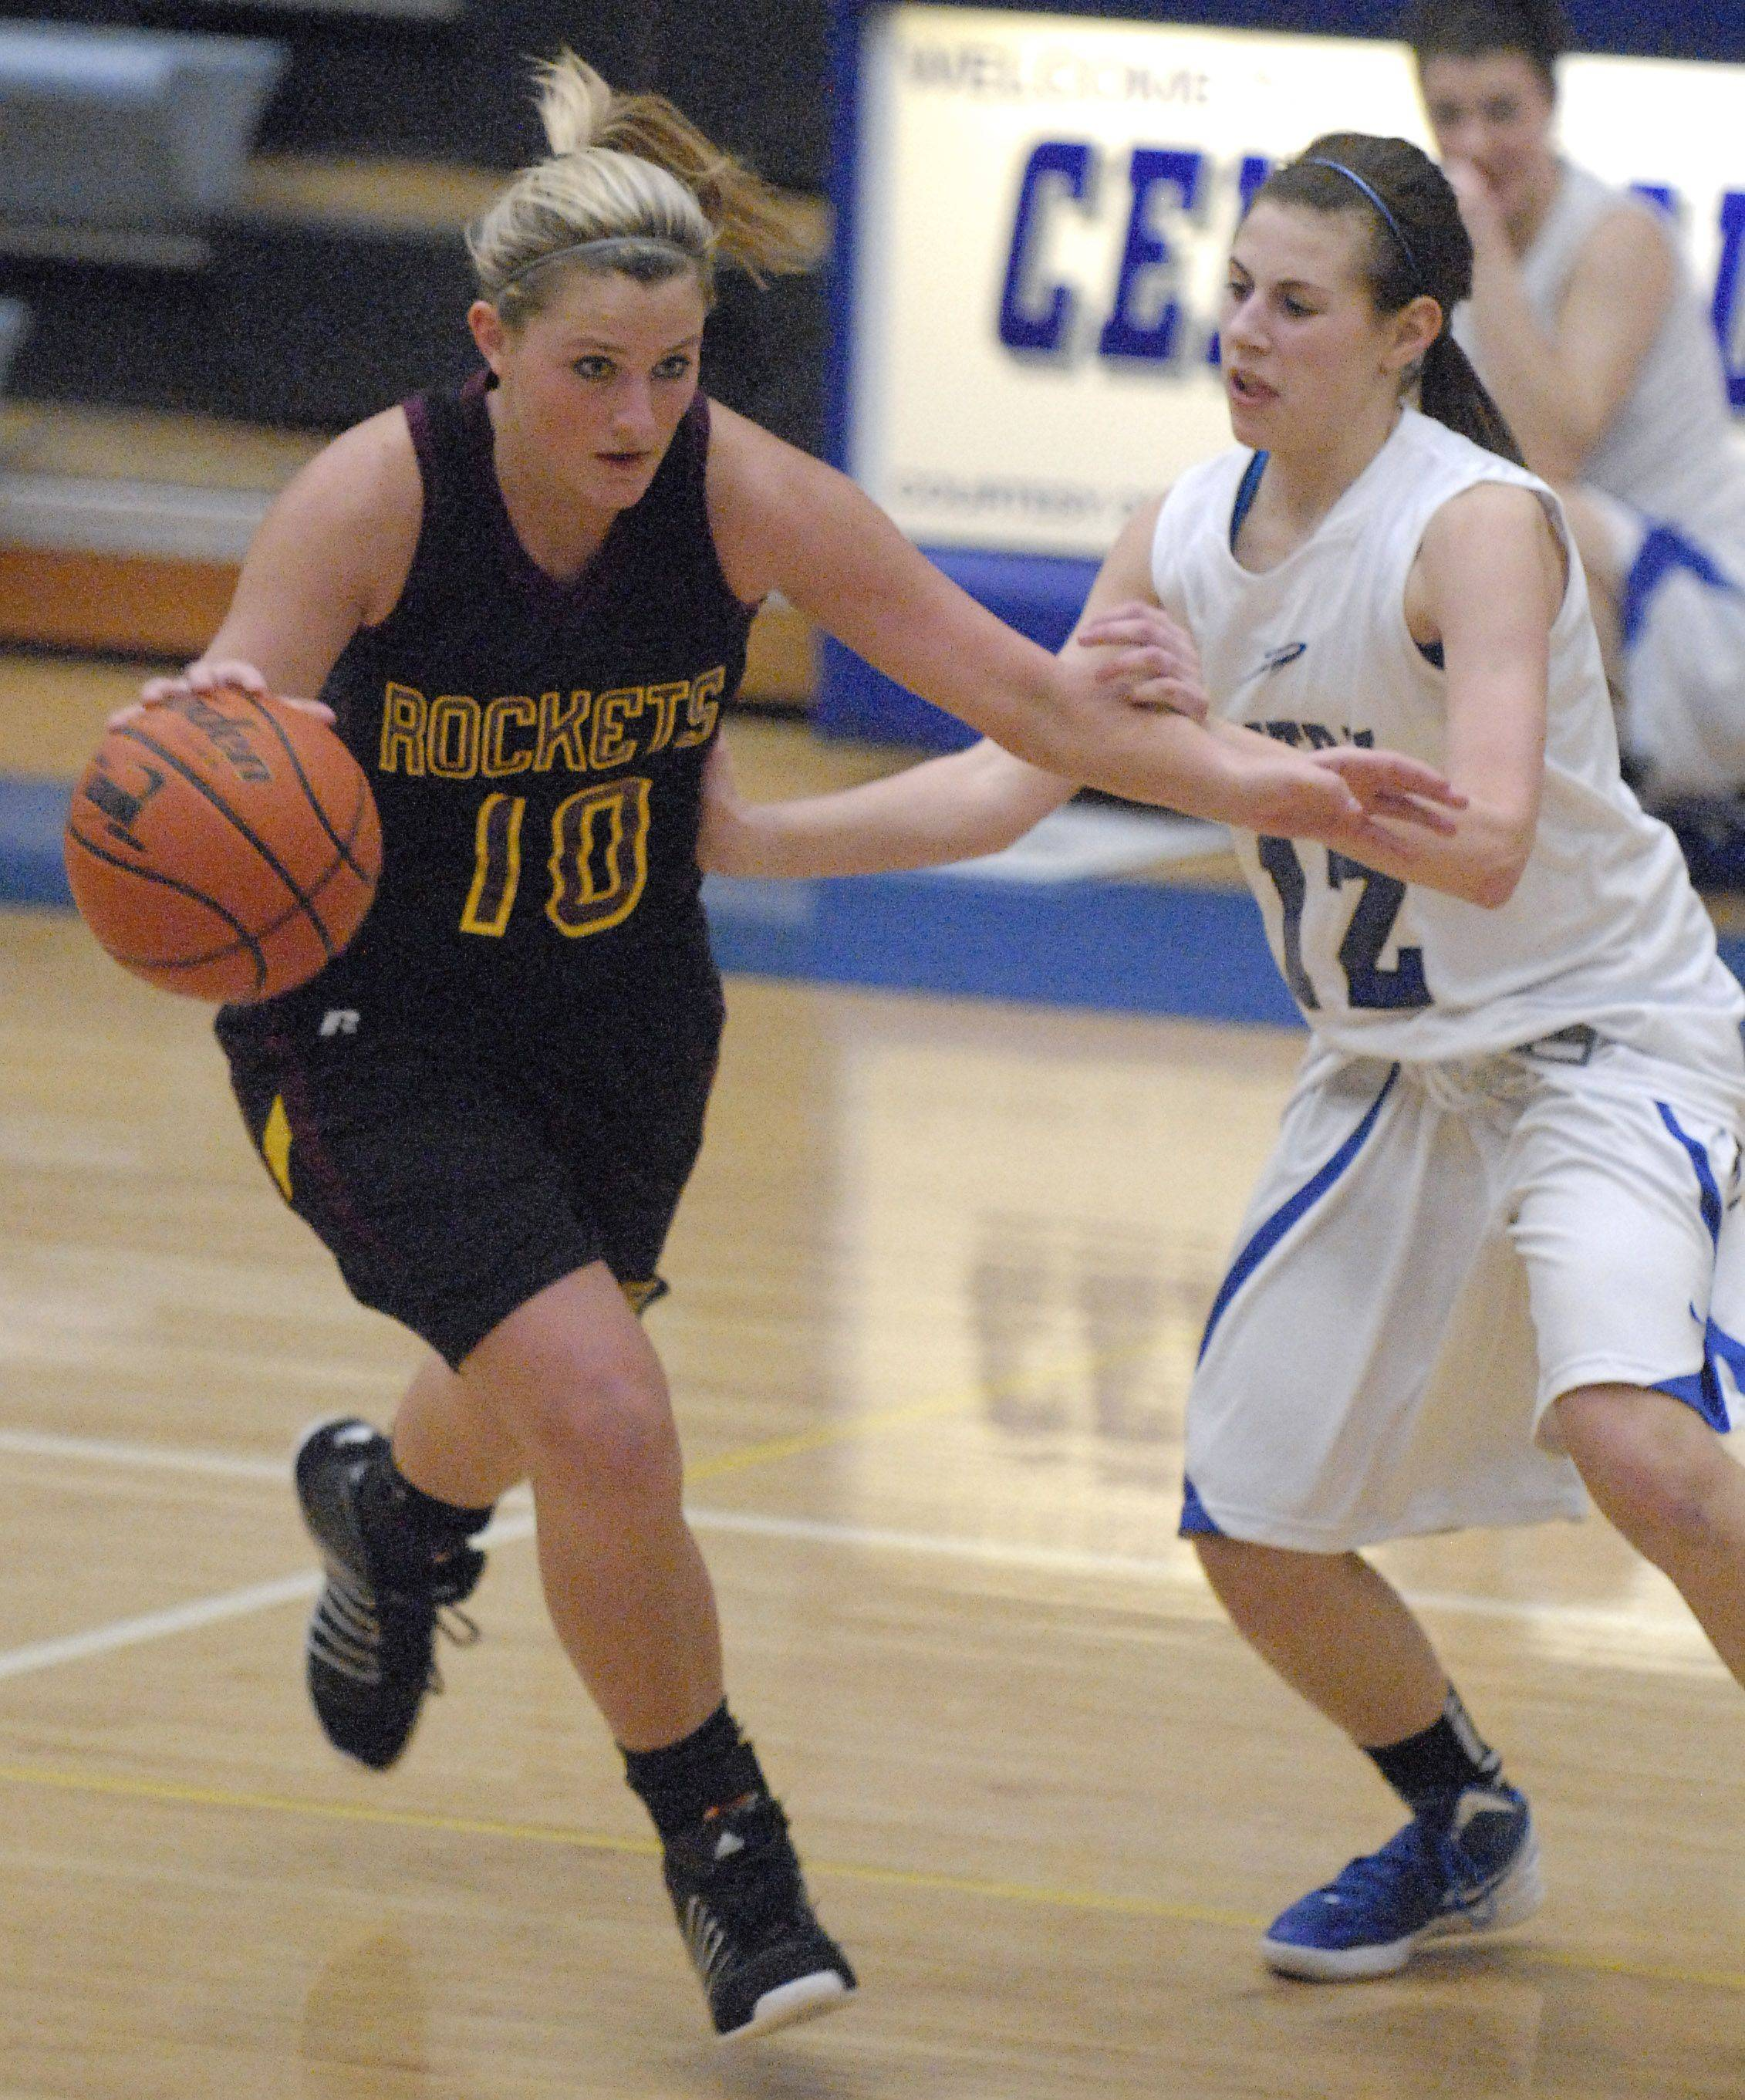 Burlington Central's Catherine Kaynish tries to slow down Richmond-Burton's Alex Callanan in the third quarter on Saturday, January 14.